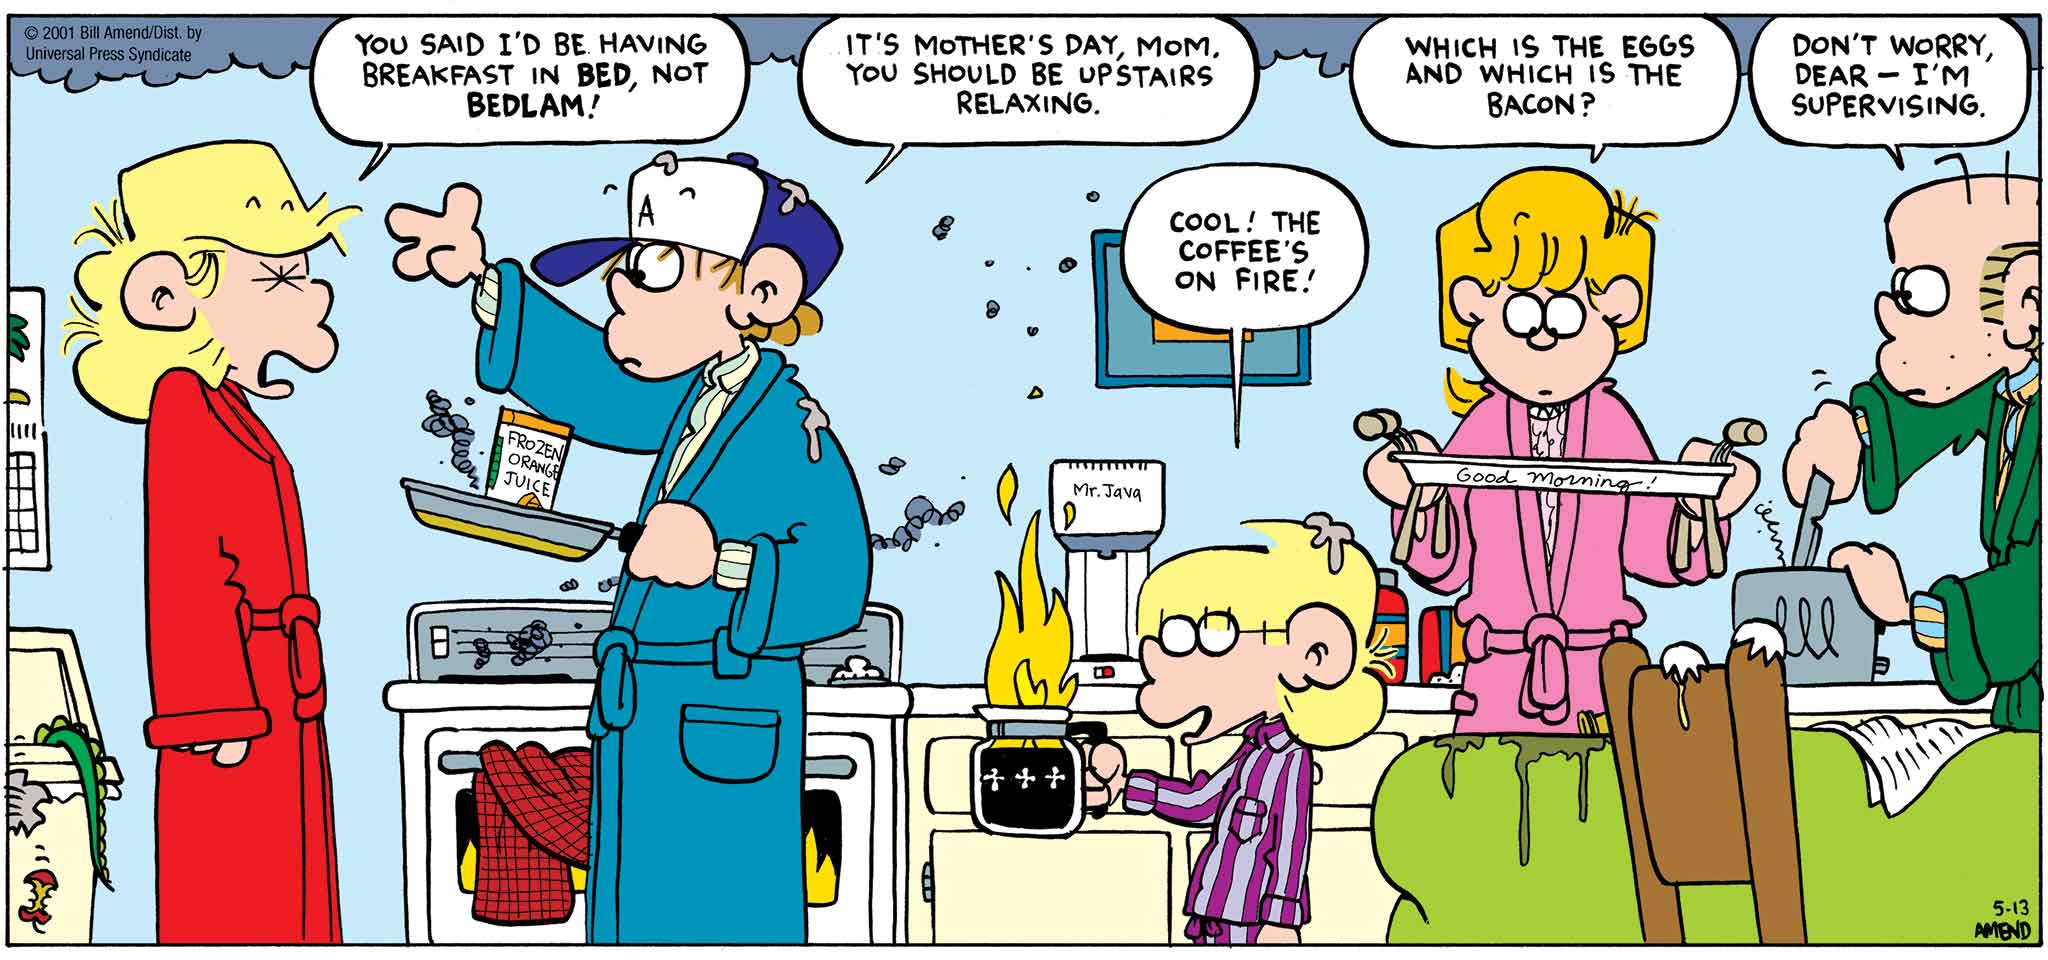 FoxTrot by Bill Amend - Mother's Day comic published May 13, 2001 - Andy: You said I'd be having breakfast in bed, not Bedlam! Peter: It's Mother's Day, mom. You should be upstairs relaxing. Jason: Cool! The coffee's on fire! Paige: Which is the eggs and which is the bacon? Roger: Don't worry, dear — I'm supervising.